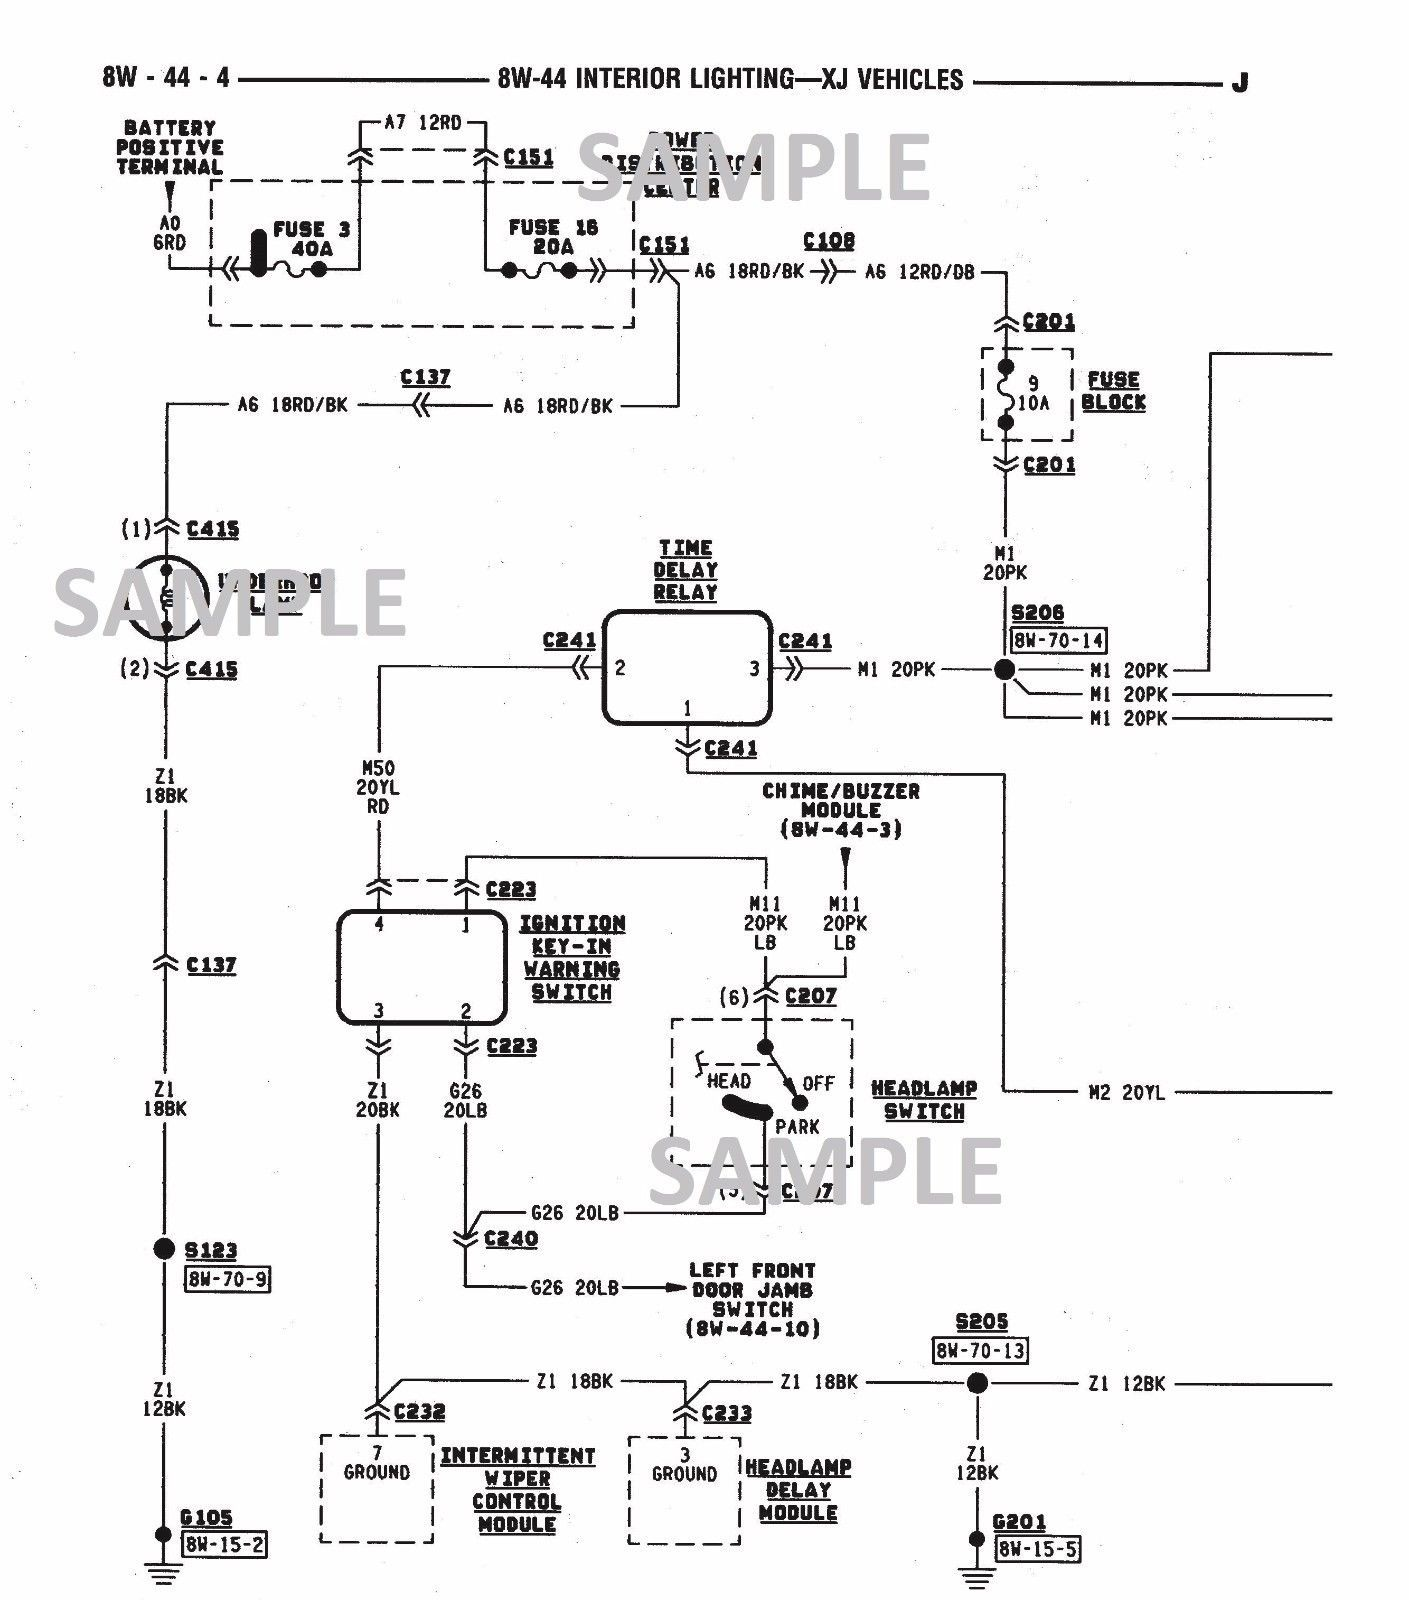 DIAGRAM] 98 Jeep Cherokee Wiring Diagram FULL Version HD Quality Wiring  Diagram - JDIAGRAM.BANDBANNAMARIA.IT | 1998 Jeep Cherokee Wiring Diagrams Pdf |  | Diagram Database - bandbannamaria.it